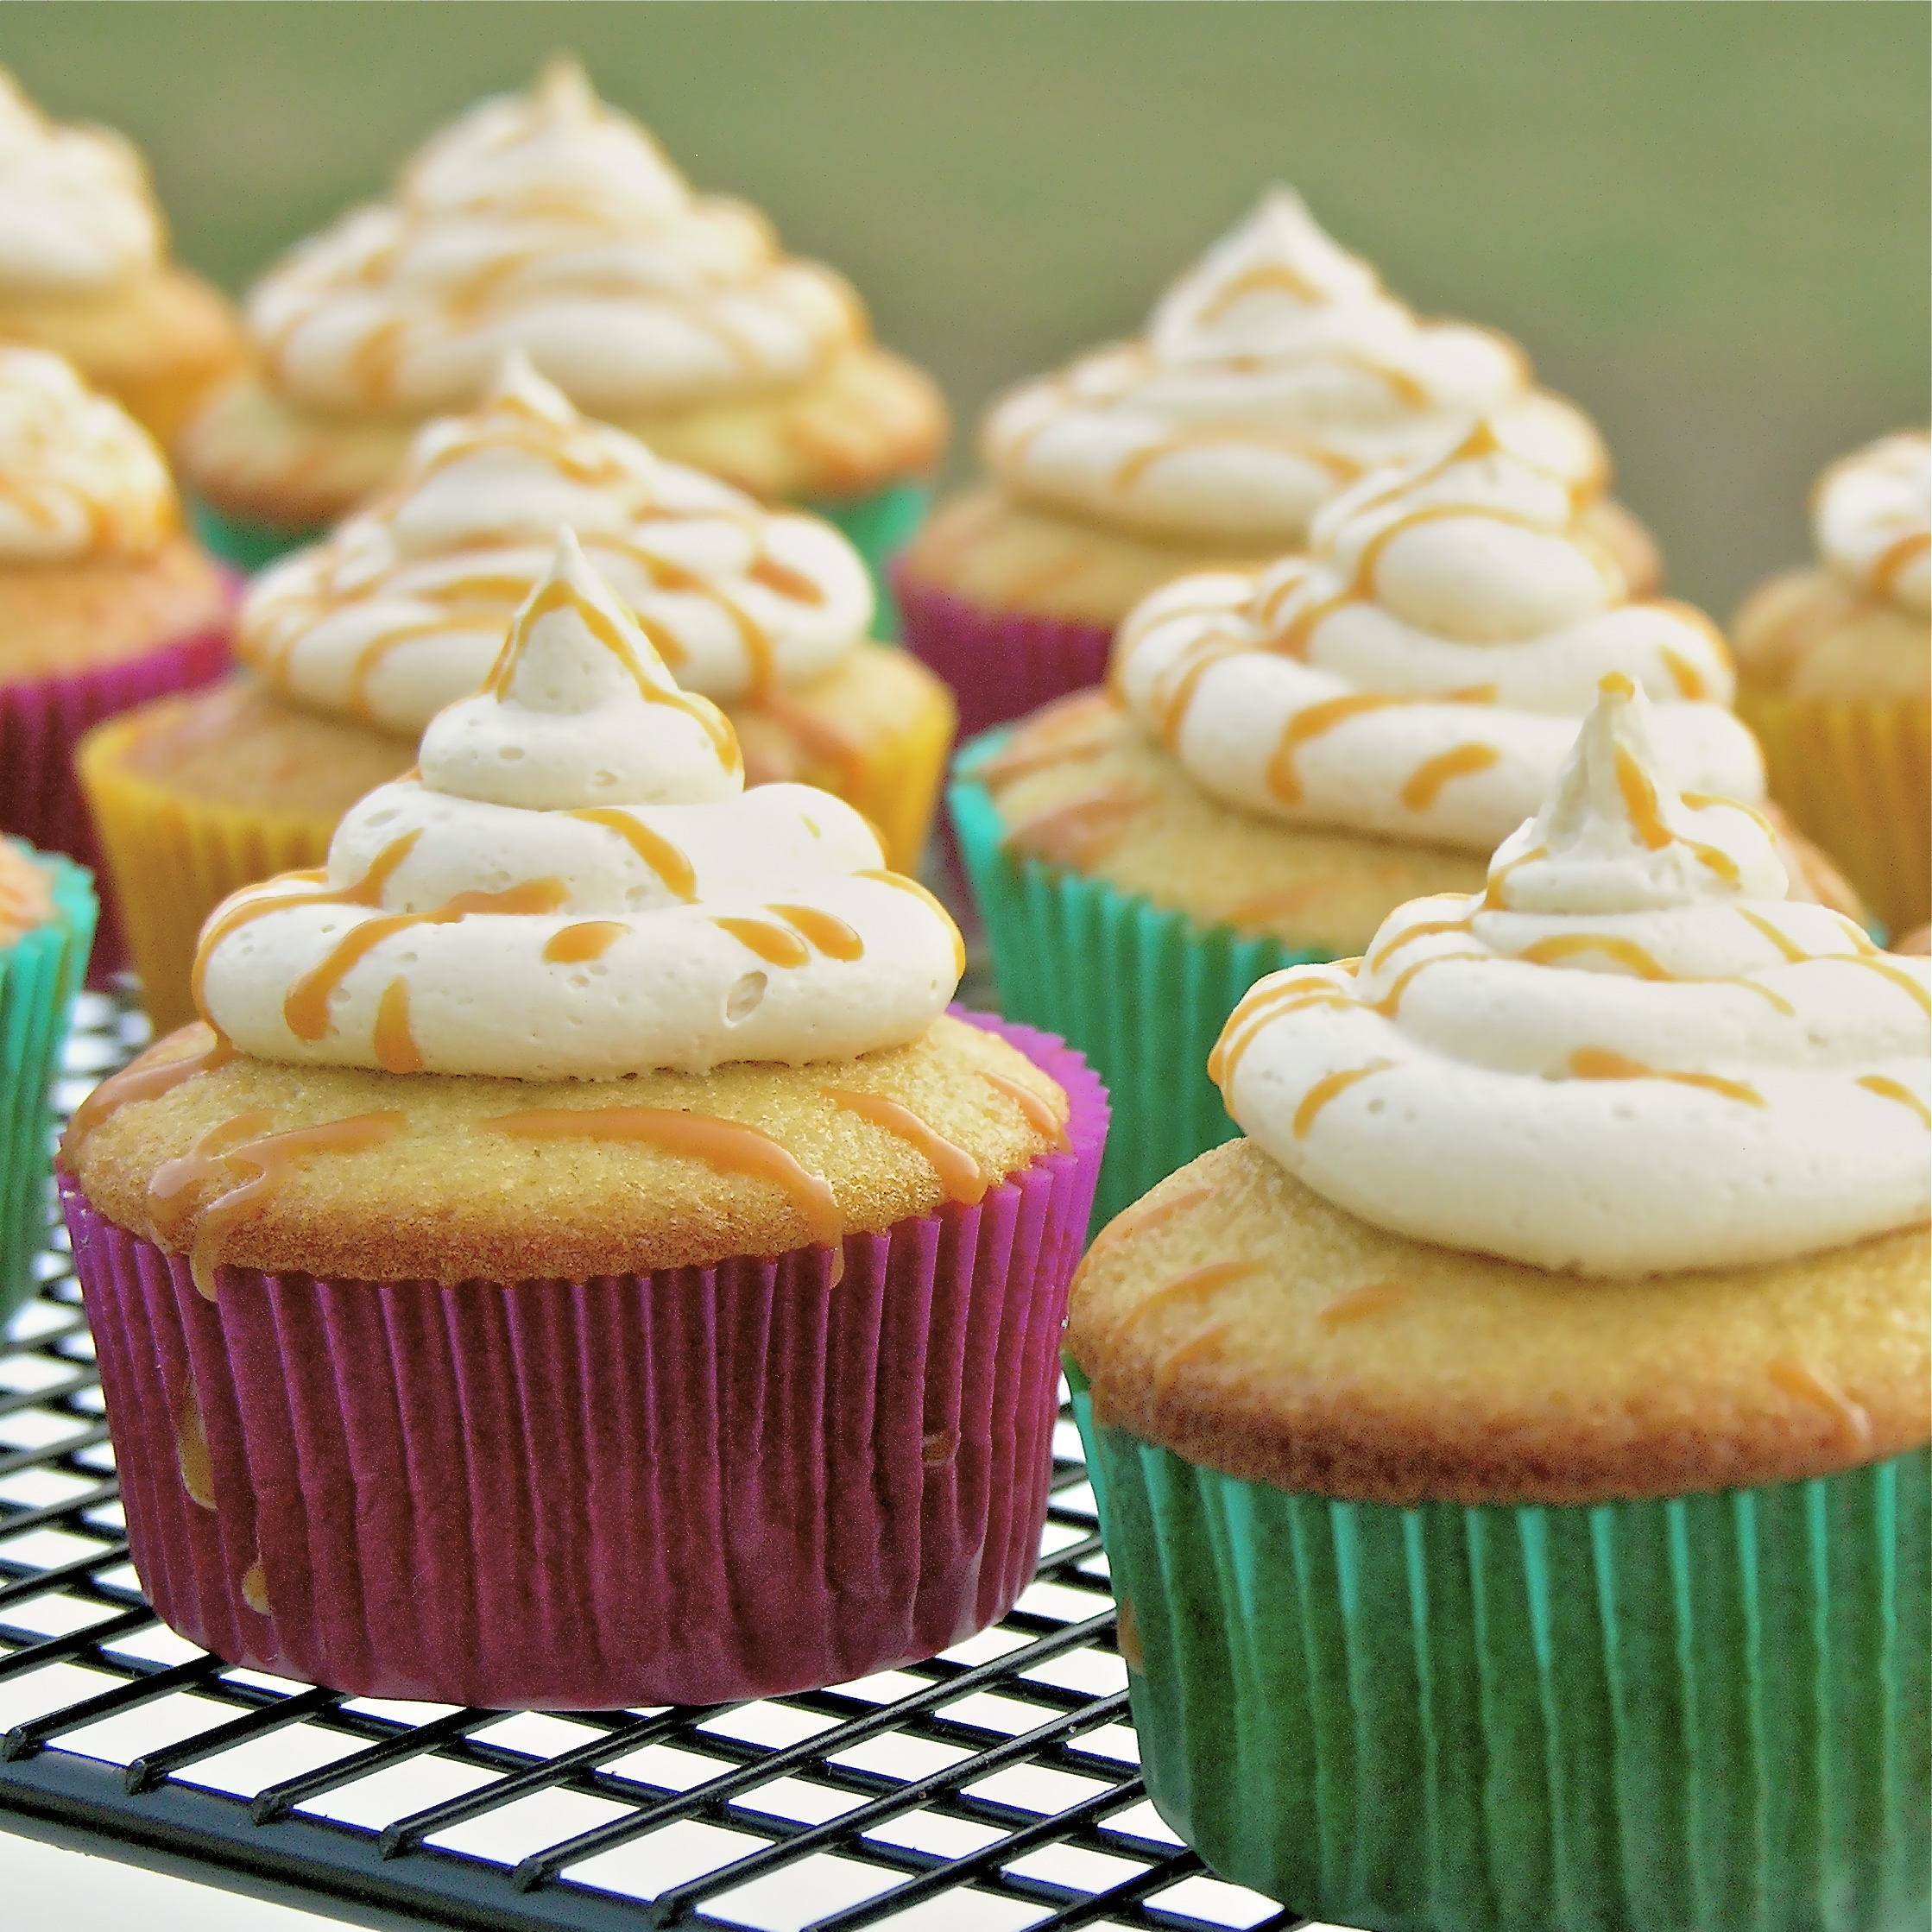 Awesome Cupcake Flavors